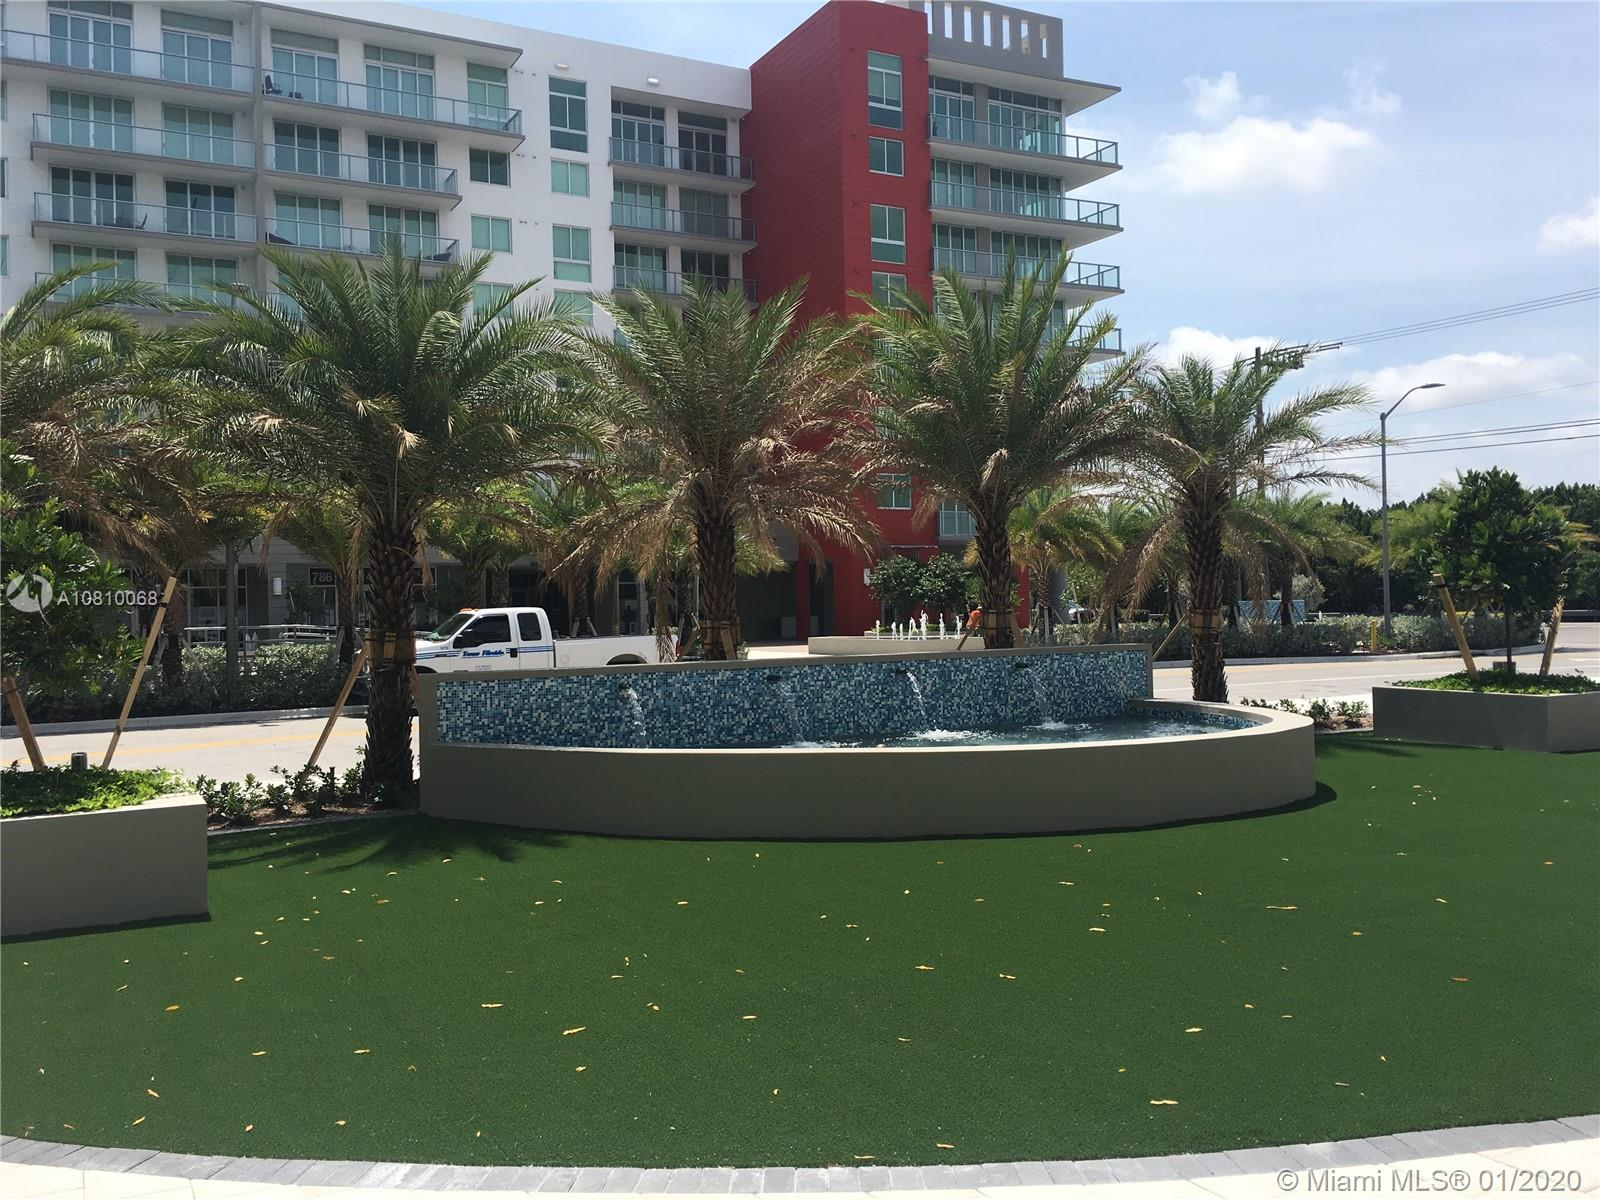 7825 NW 107th Ave # 603, Doral, Florida 33178, 2 Bedrooms Bedrooms, ,2 BathroomsBathrooms,Residential Lease,For Rent,7825 NW 107th Ave # 603,A10810068